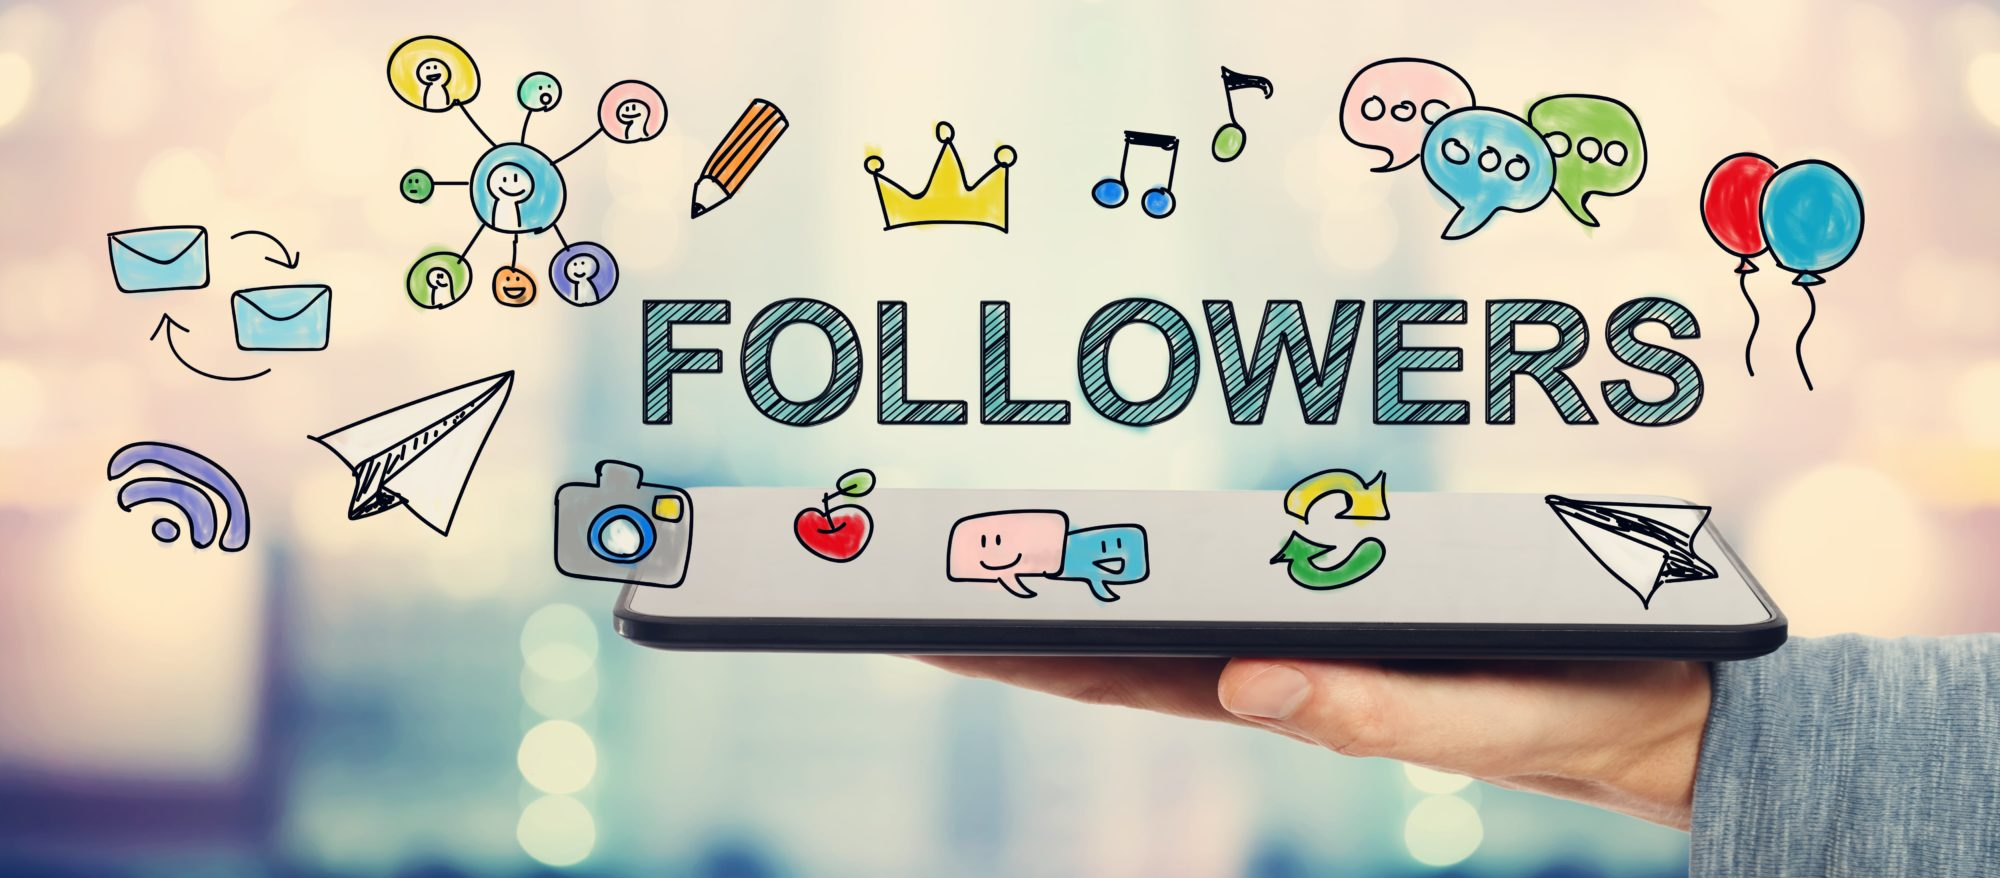 Social Media Platforms Need To Do More When It Comes To Fake Followers